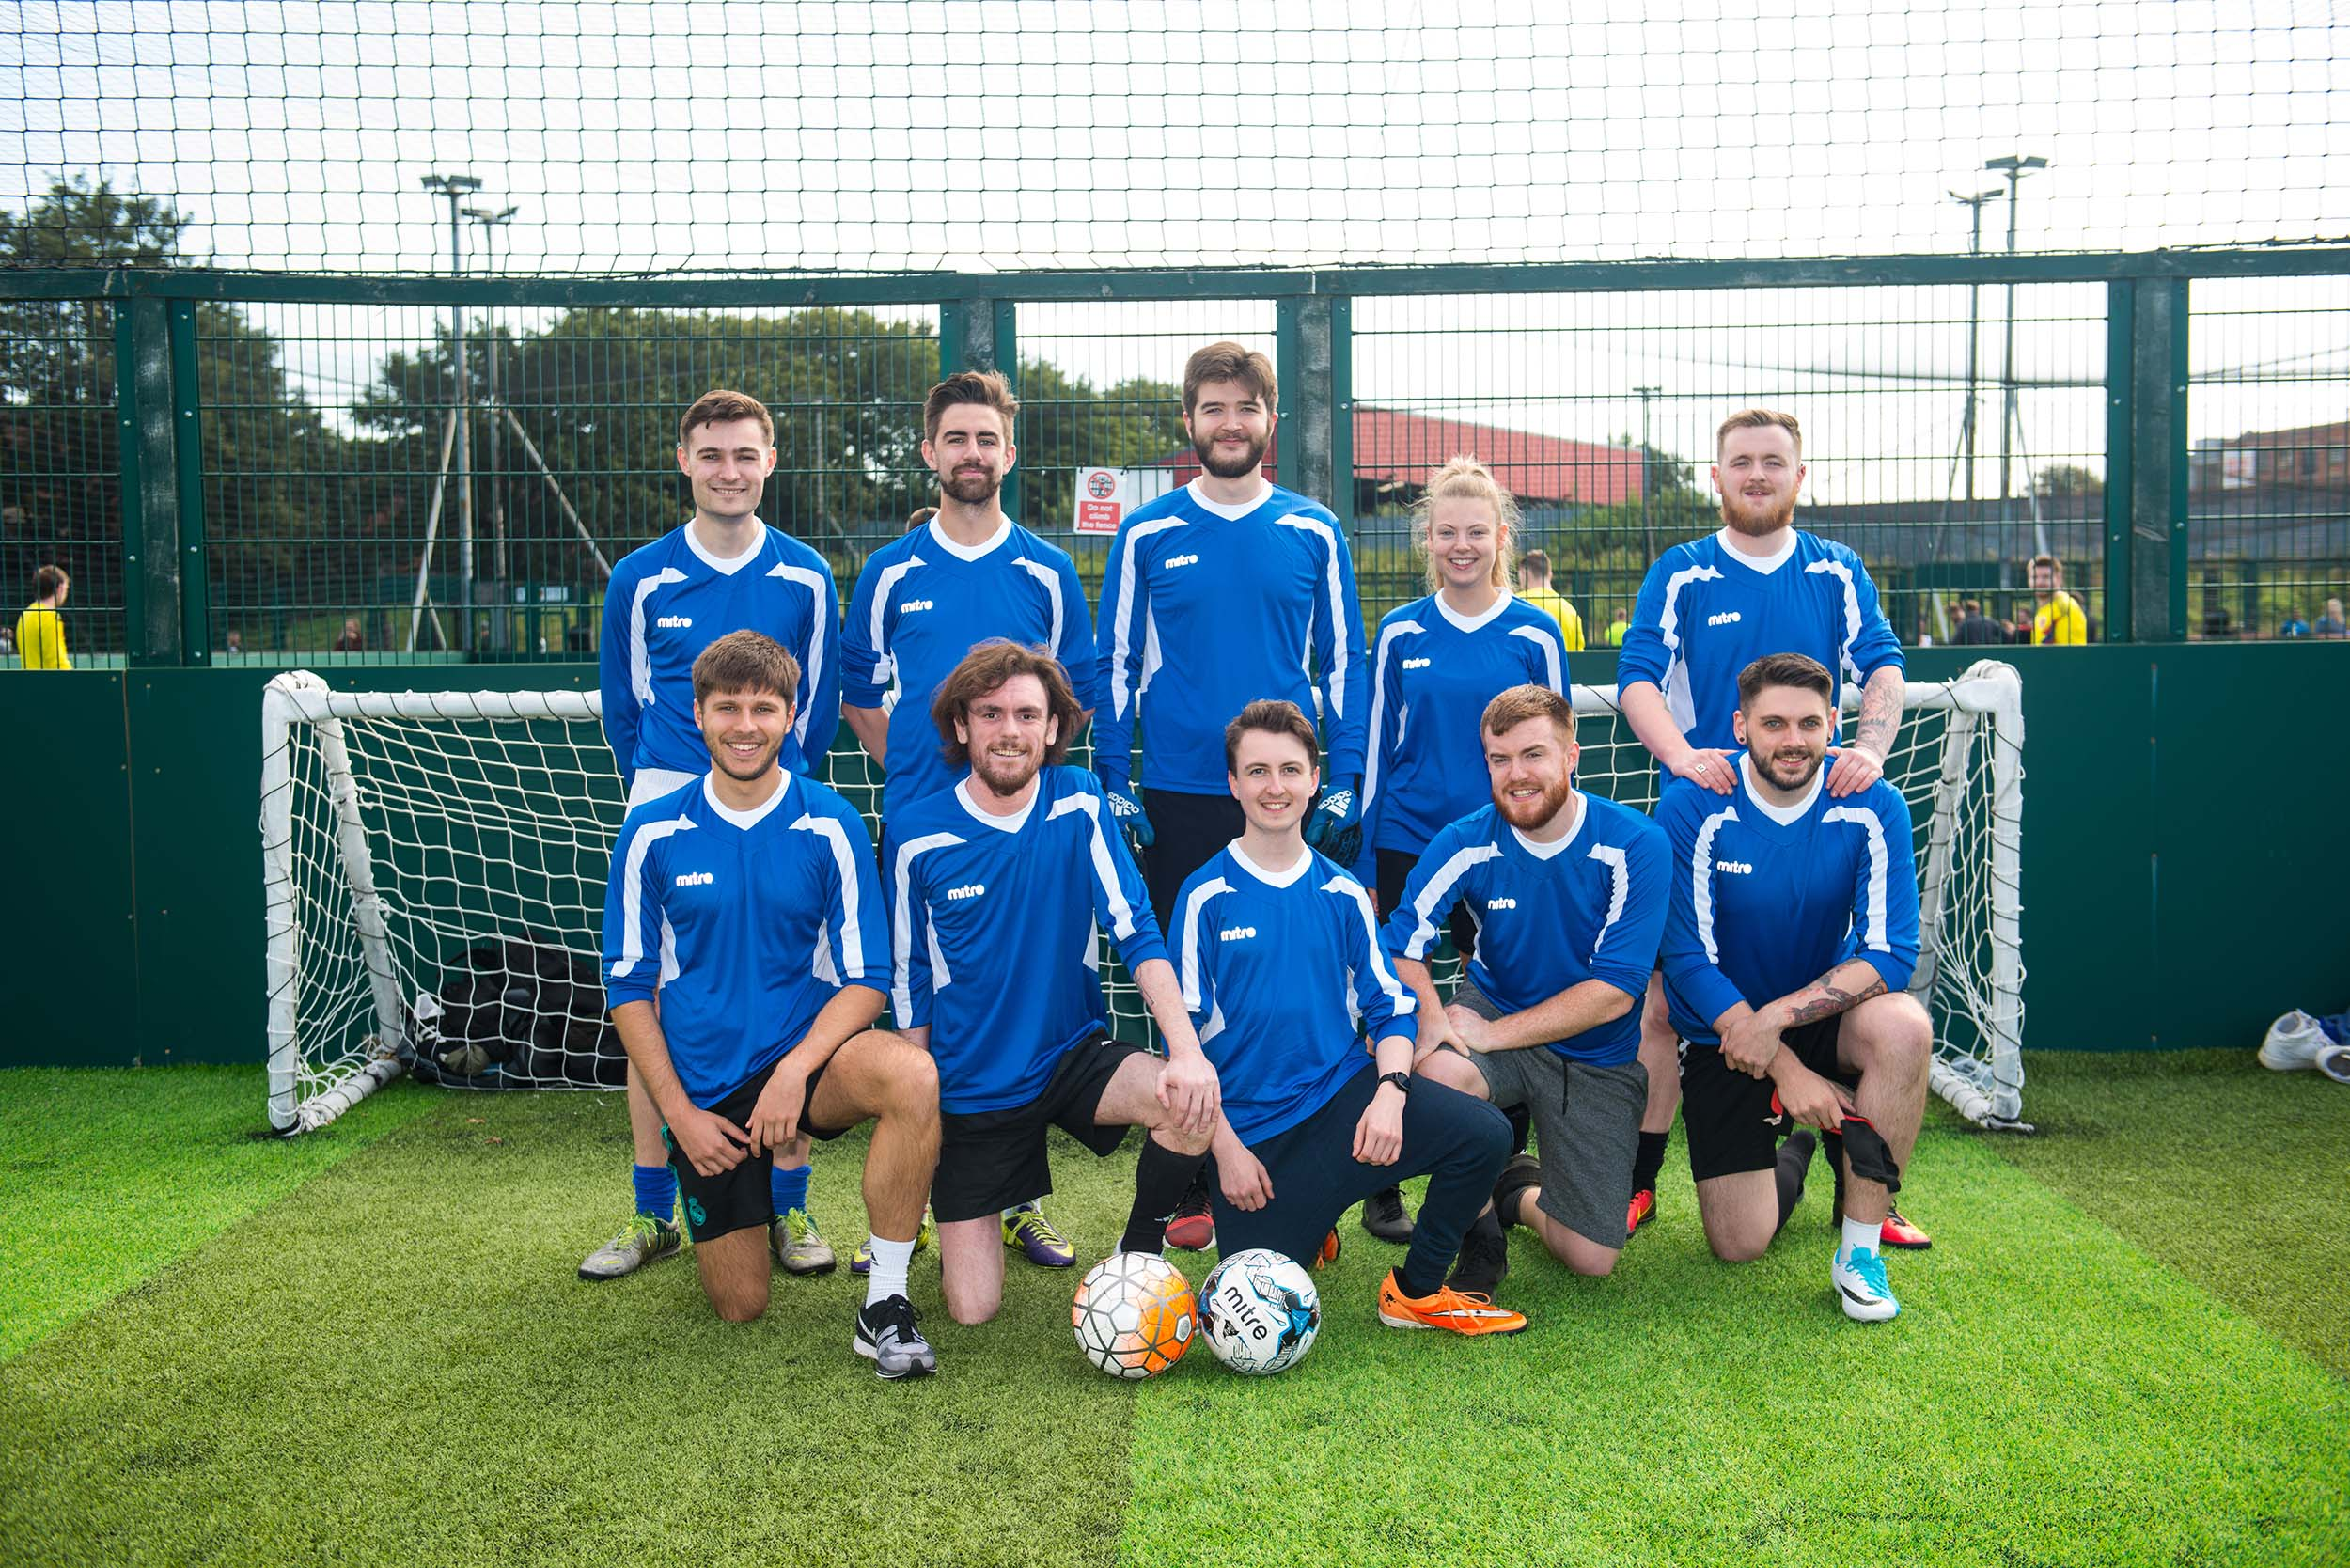 Wetherspoons staff power league football Ardwick corporate photography Manchester